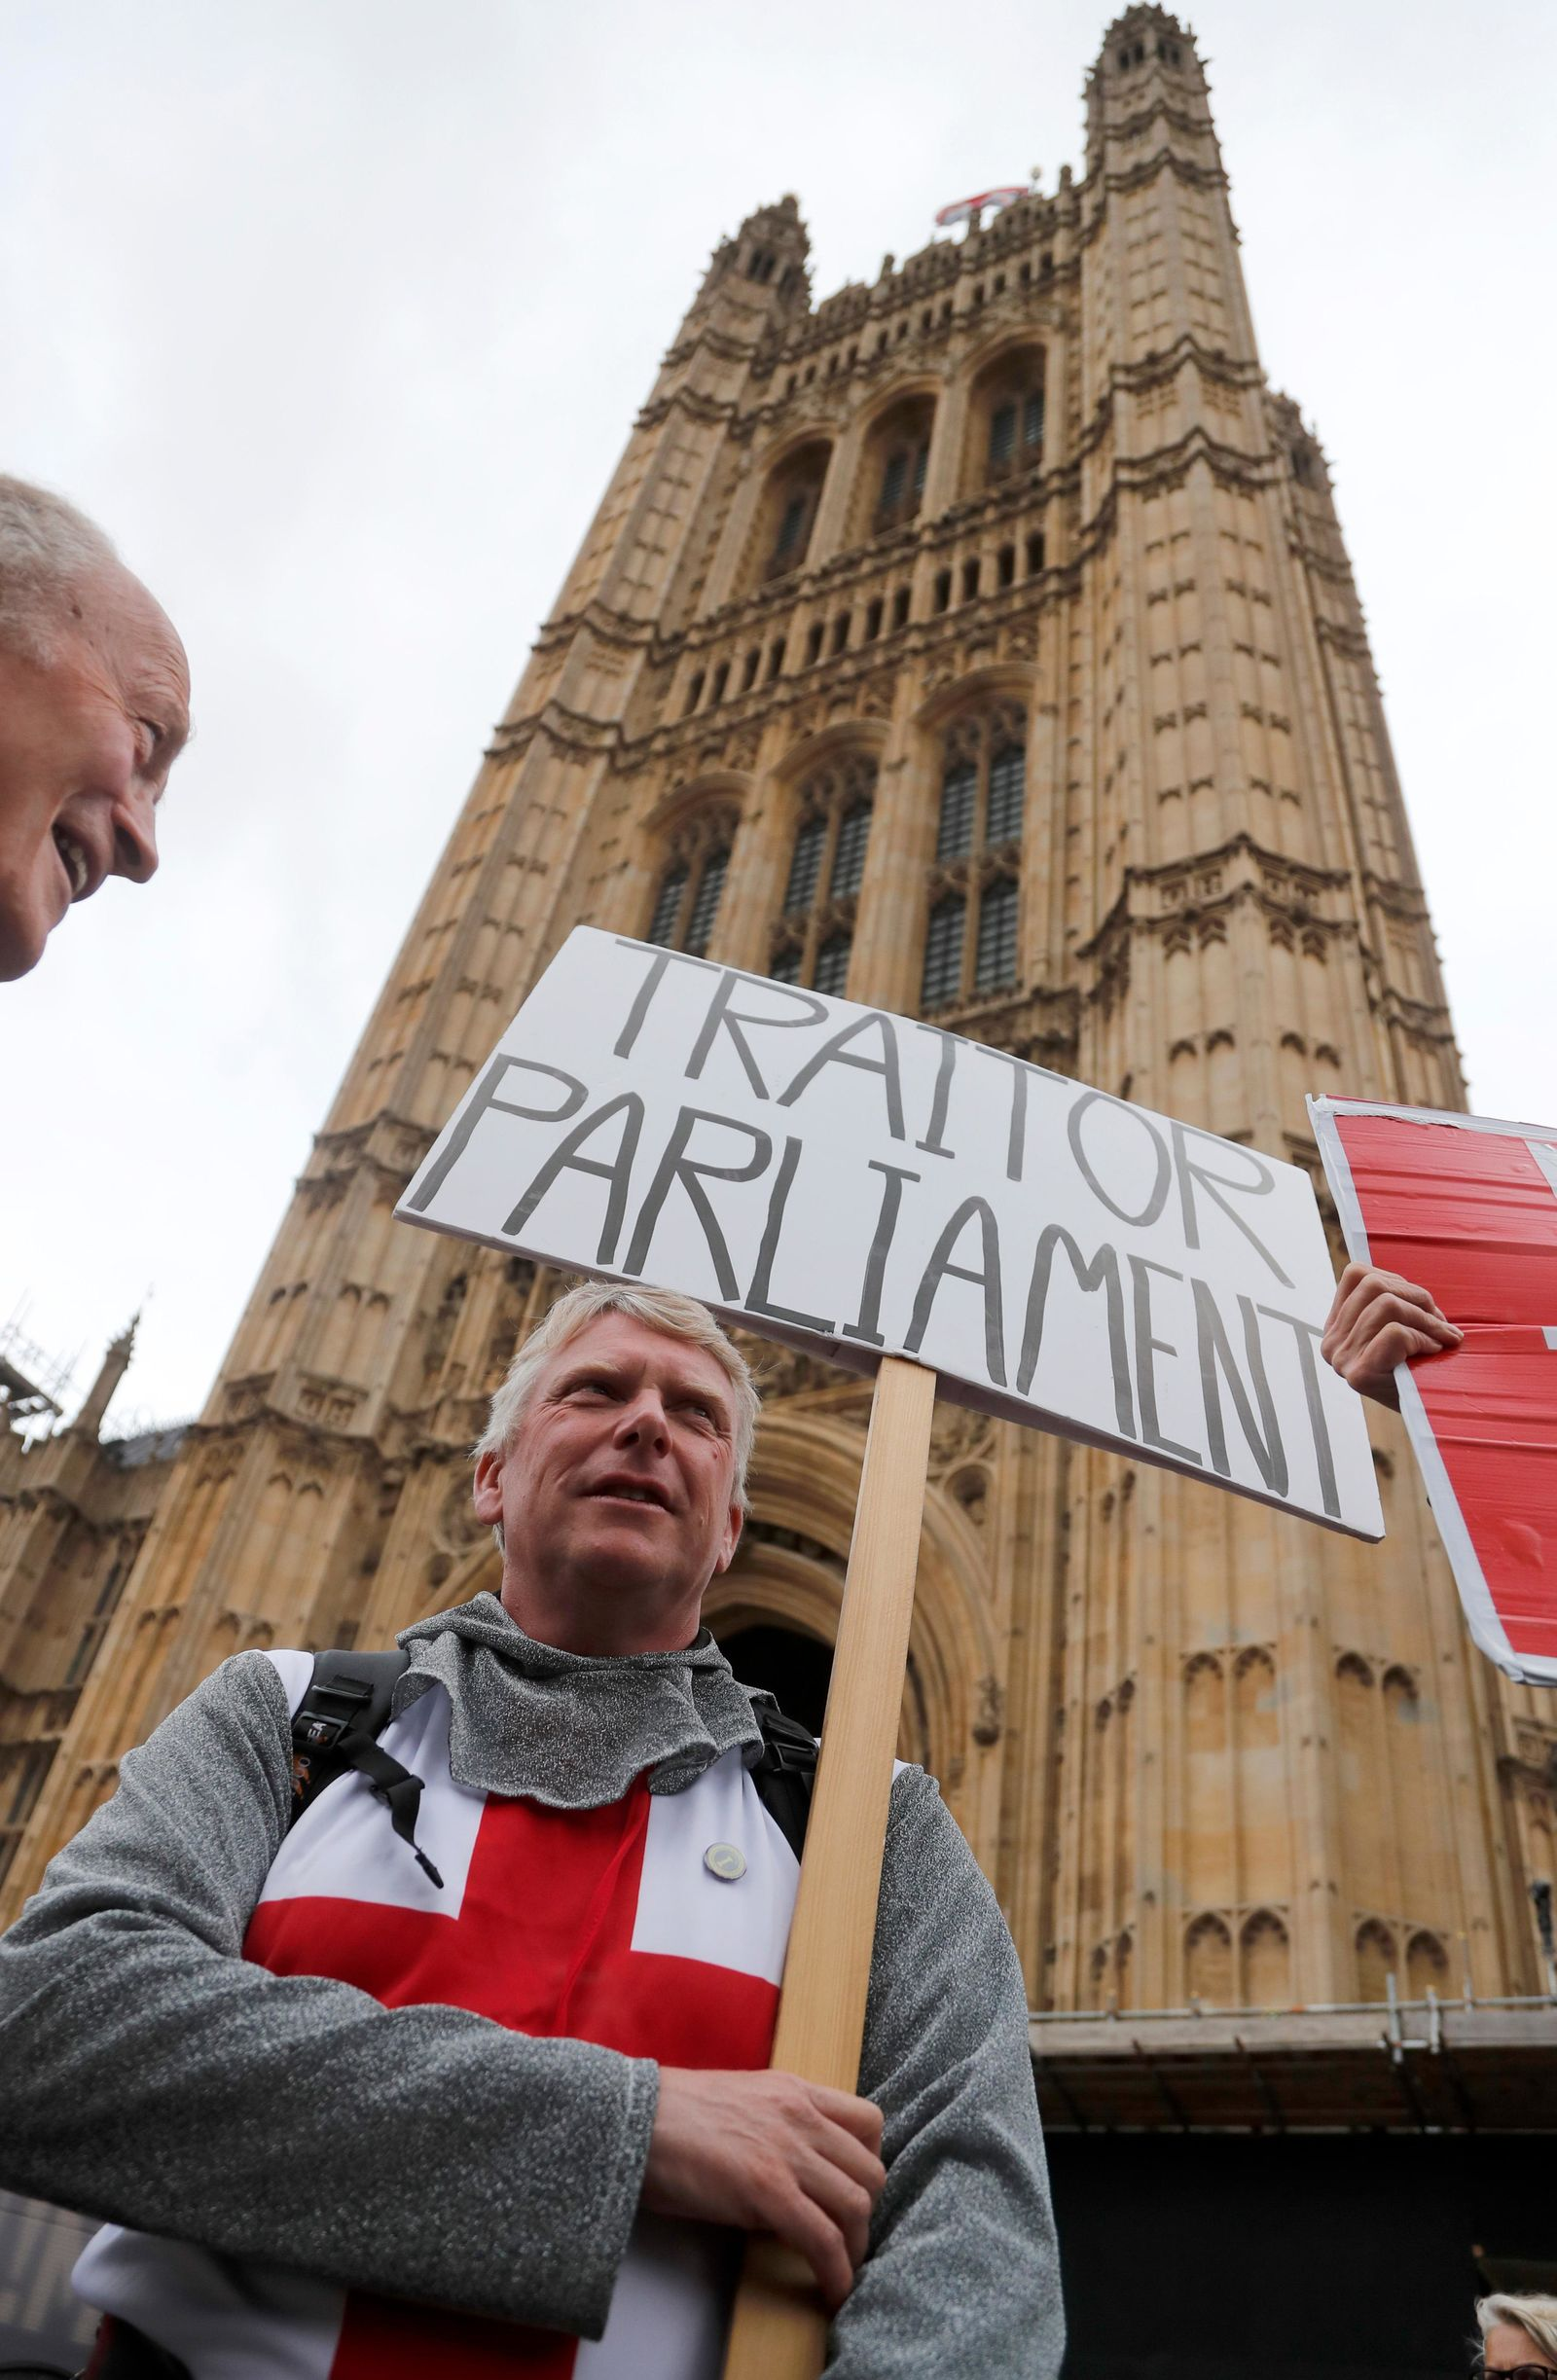 A protestor shows a poster opposite parliament in London, Monday, Sept. 9, 2019. (AP Photo/Frank Augstein)